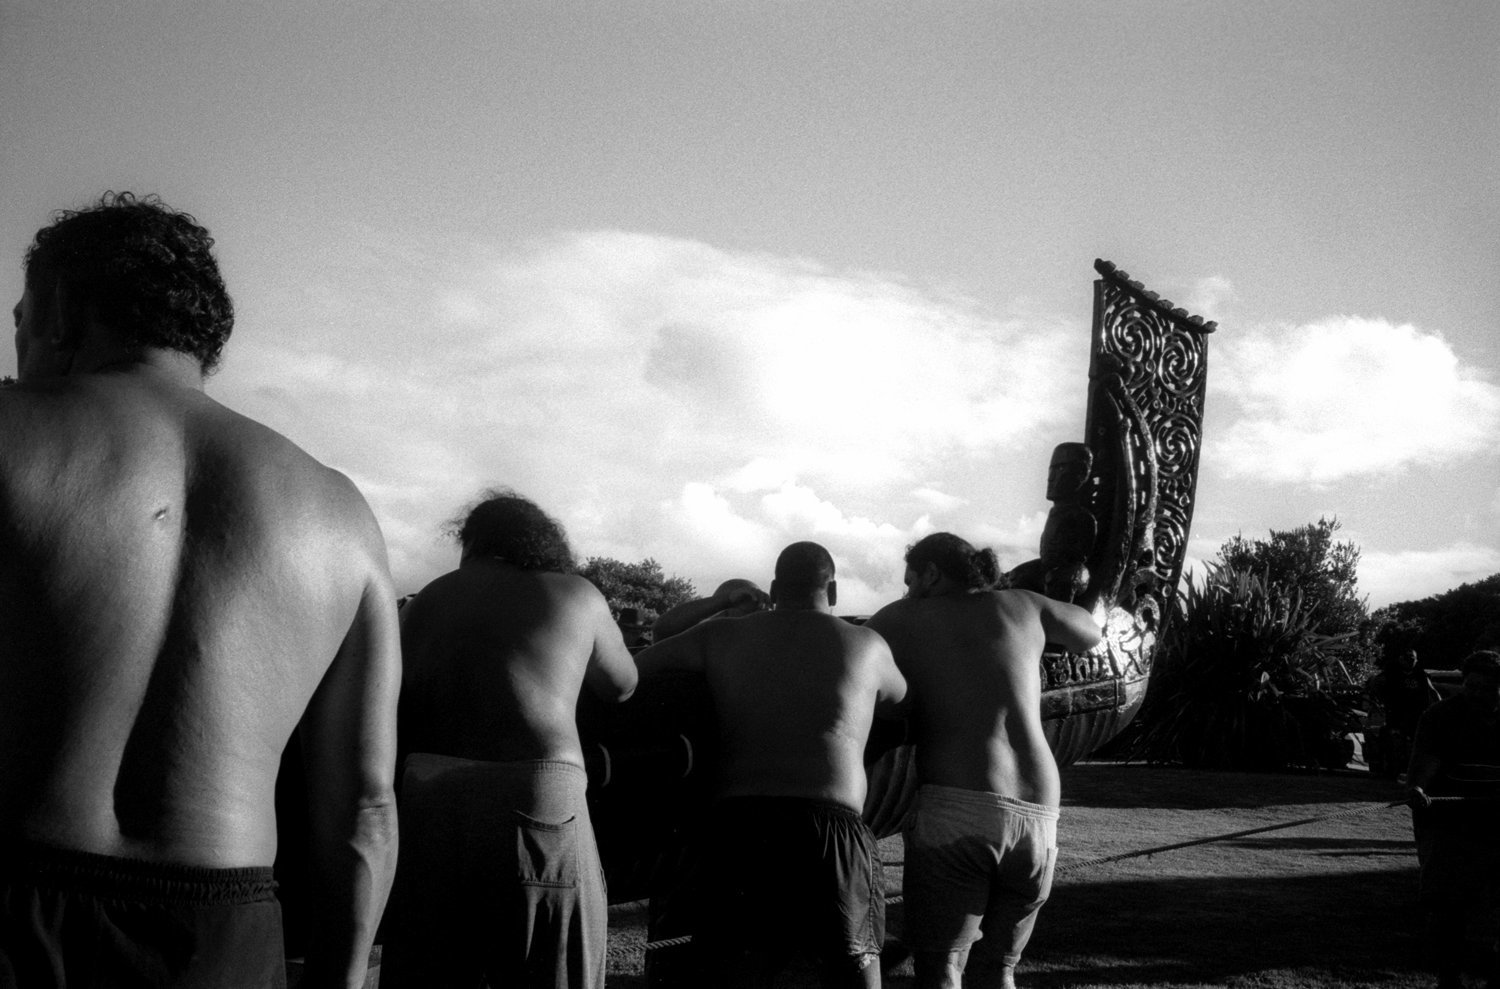 ©Tamara Voninski. Maori men prepare for a traditional waka, war canoe, near Waitangi, New Zealand.  In 2005, the New Zealand government passed the controversial Seabed and Foreshore legislation to prevent Maori from claiming exclusive ownership of New Zealand2019s resource rich coastline and seabed. The Maori traditionally see themselves as caretakers of the land and coastline.  The Maori population is approximately 530,000 of four million New Zealanders.